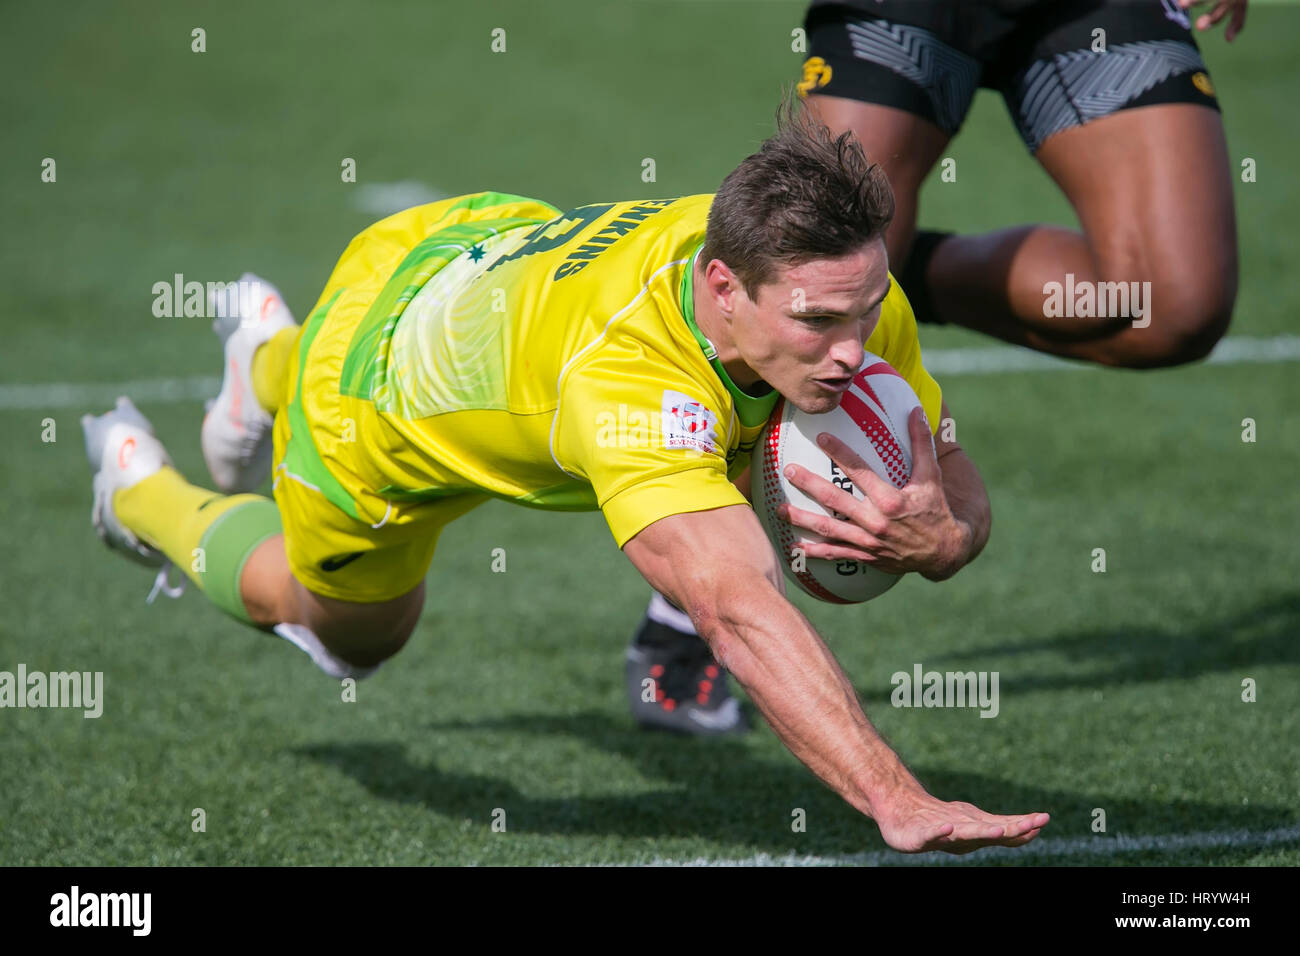 Las Vegas, NV, USA. 4th Mar, 2017. Ed Jenkins #9 of Australia dives in for a score during Pool D play of the rugby Stock Foto